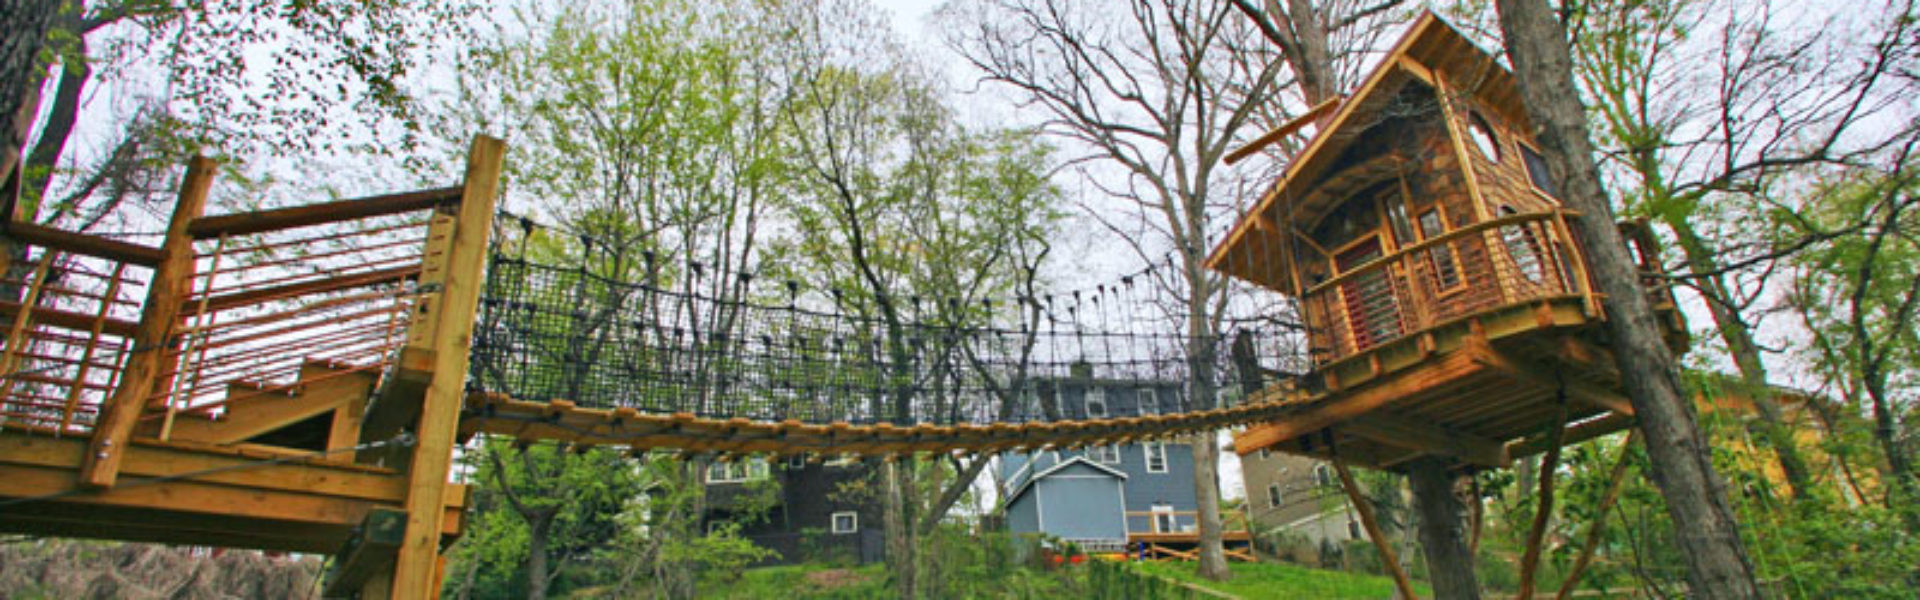 Why build a treehouse? - World Treehouses of Asheville NC % %